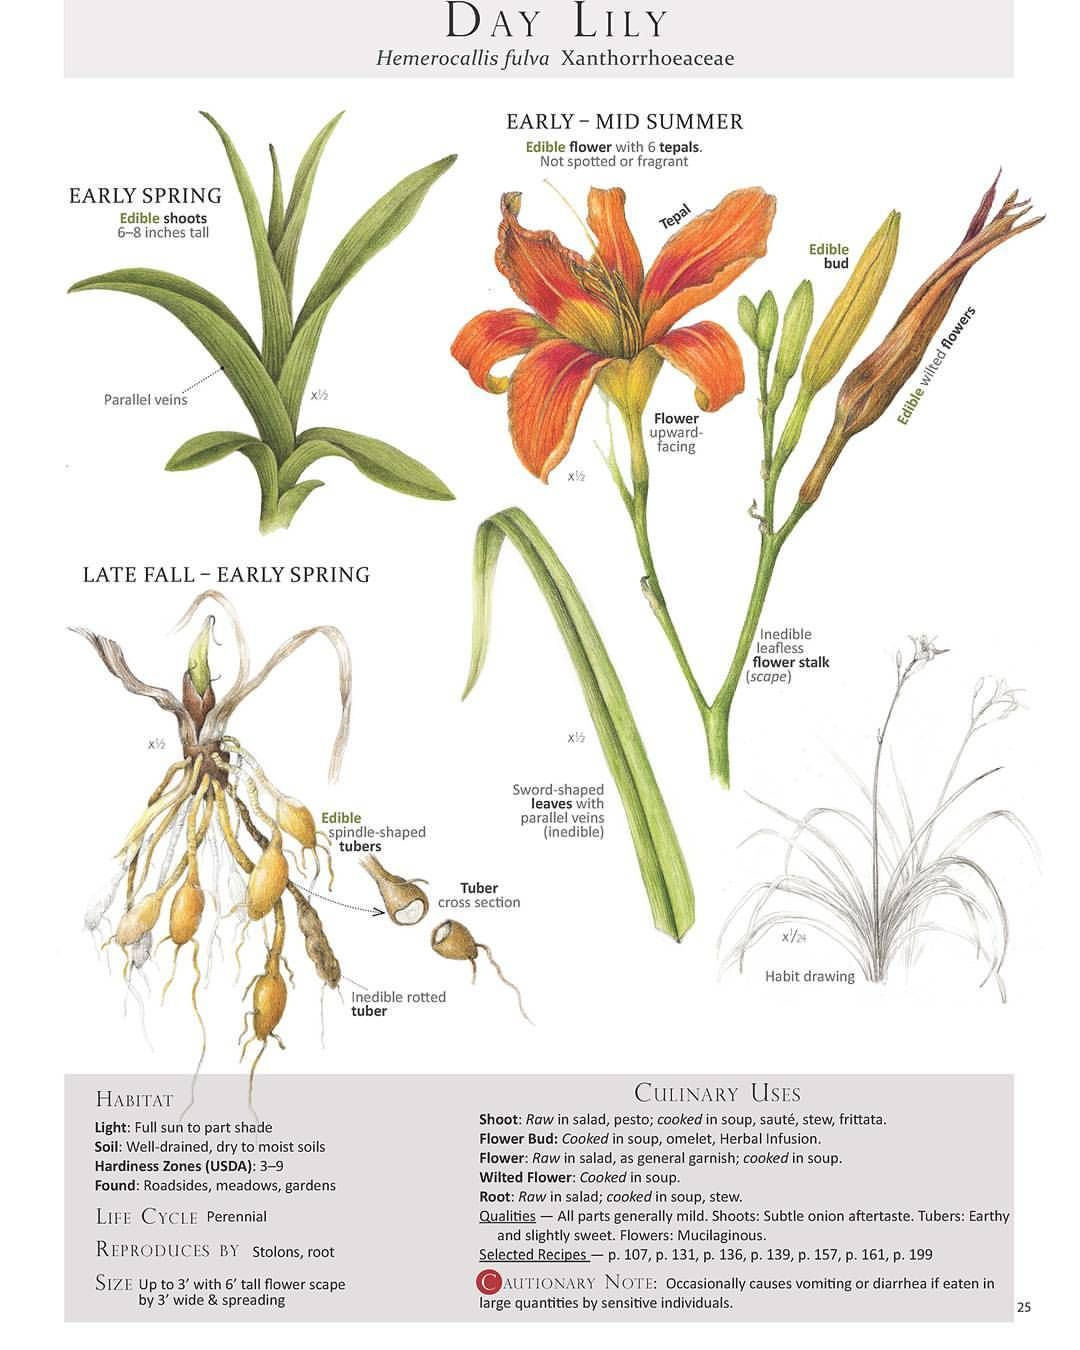 Pin by kyra hurd on medicine garden pinterest gardens daylily for spring and early summer eating izmirmasajfo